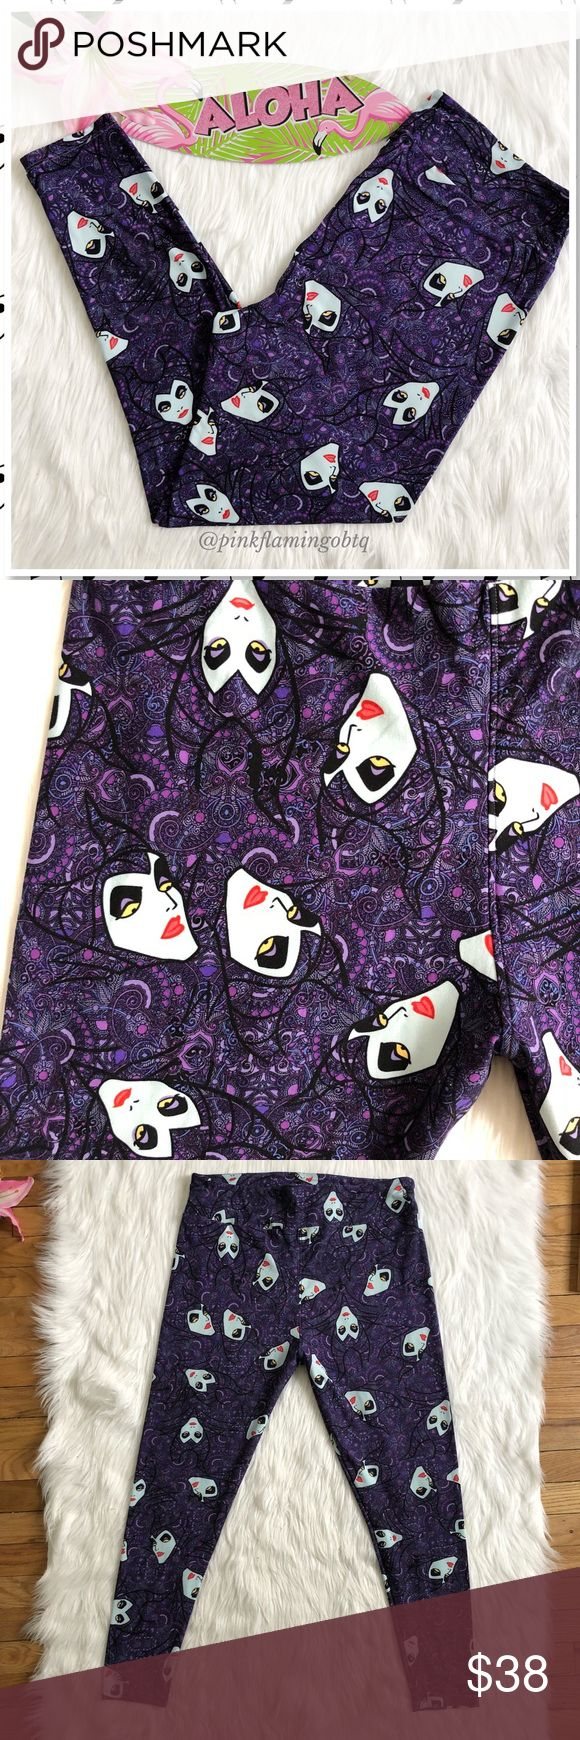 NWOT LuLaRoe TC2 Disney Villain Maleficent Legging NWOT LuLaRoe Disney's Maleficent Purple Leggings TC2 PLUS. New Maleficent print buttery soft leggings. Got these as a present but my friend didn't know the difference between TC and TC2 or that there was a TC2. Sad for me, happy for you! TC2 is size 18+ PLUS. Perfect for any Disney LuLaRoe Collector! Photos are best descriptors. LuLaRoe Pants Leggings